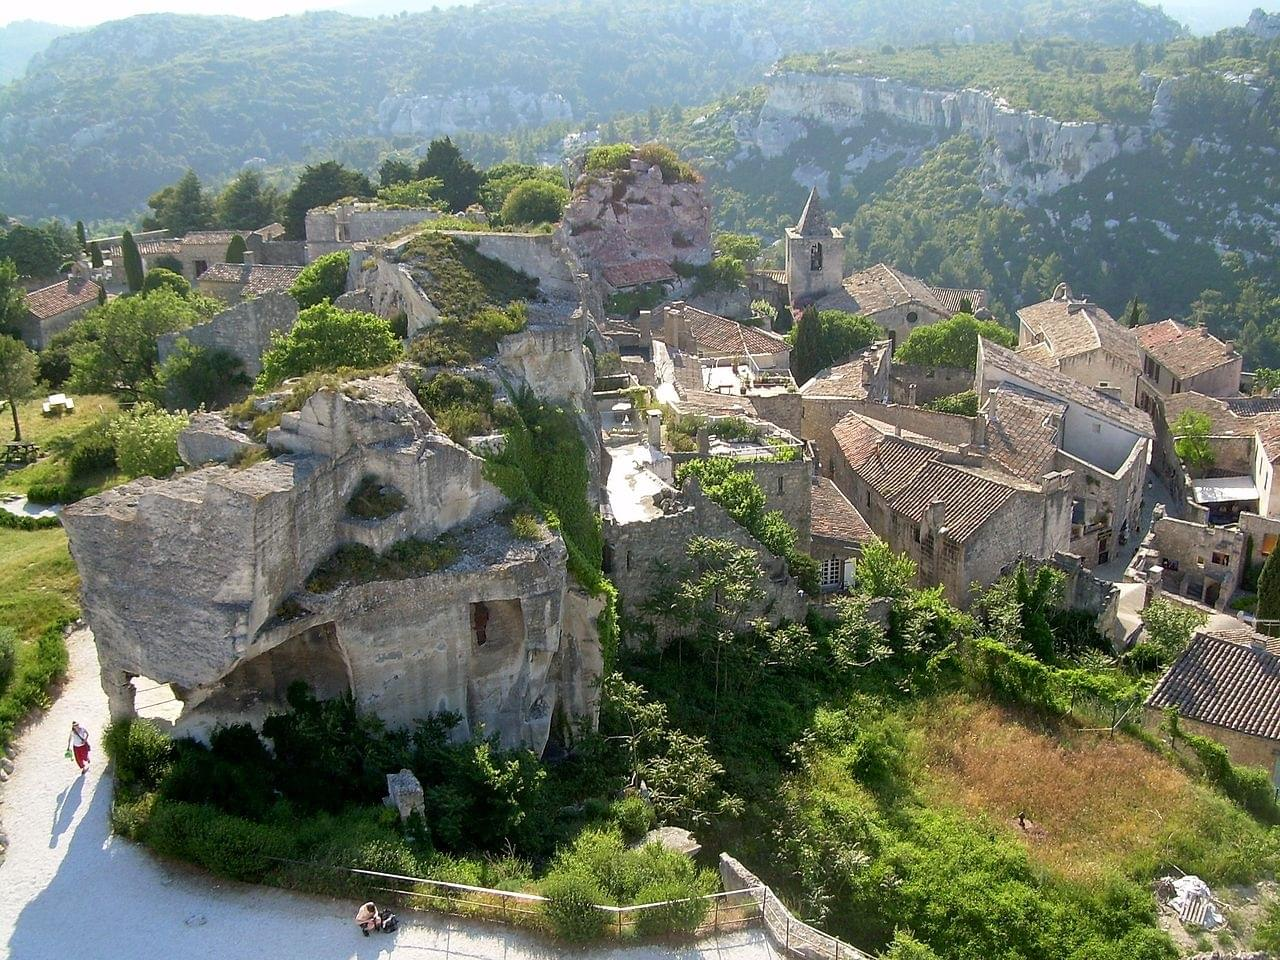 Les Baux de Provence : introduction